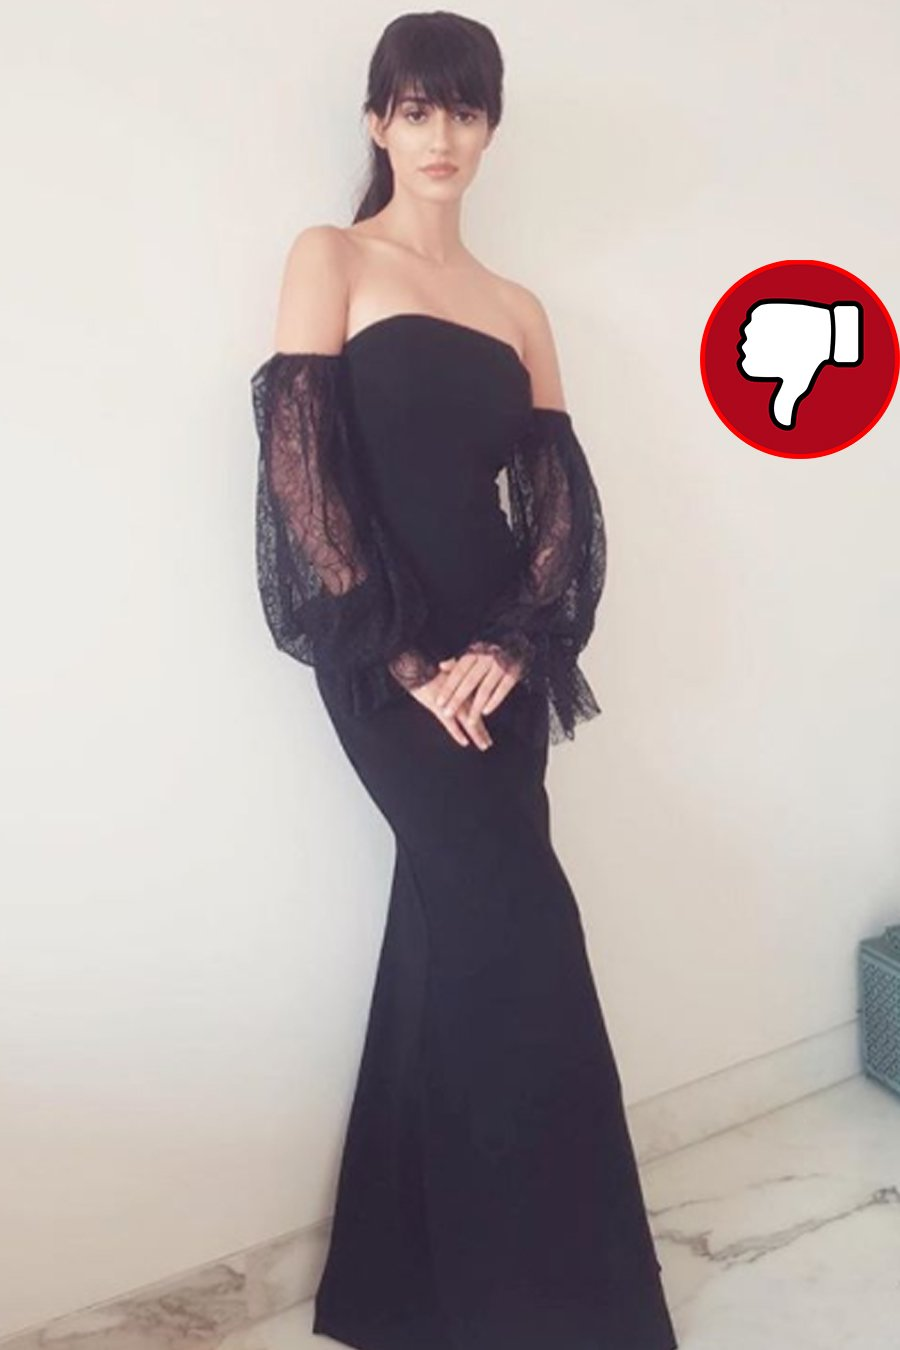 disha patani in a black gown